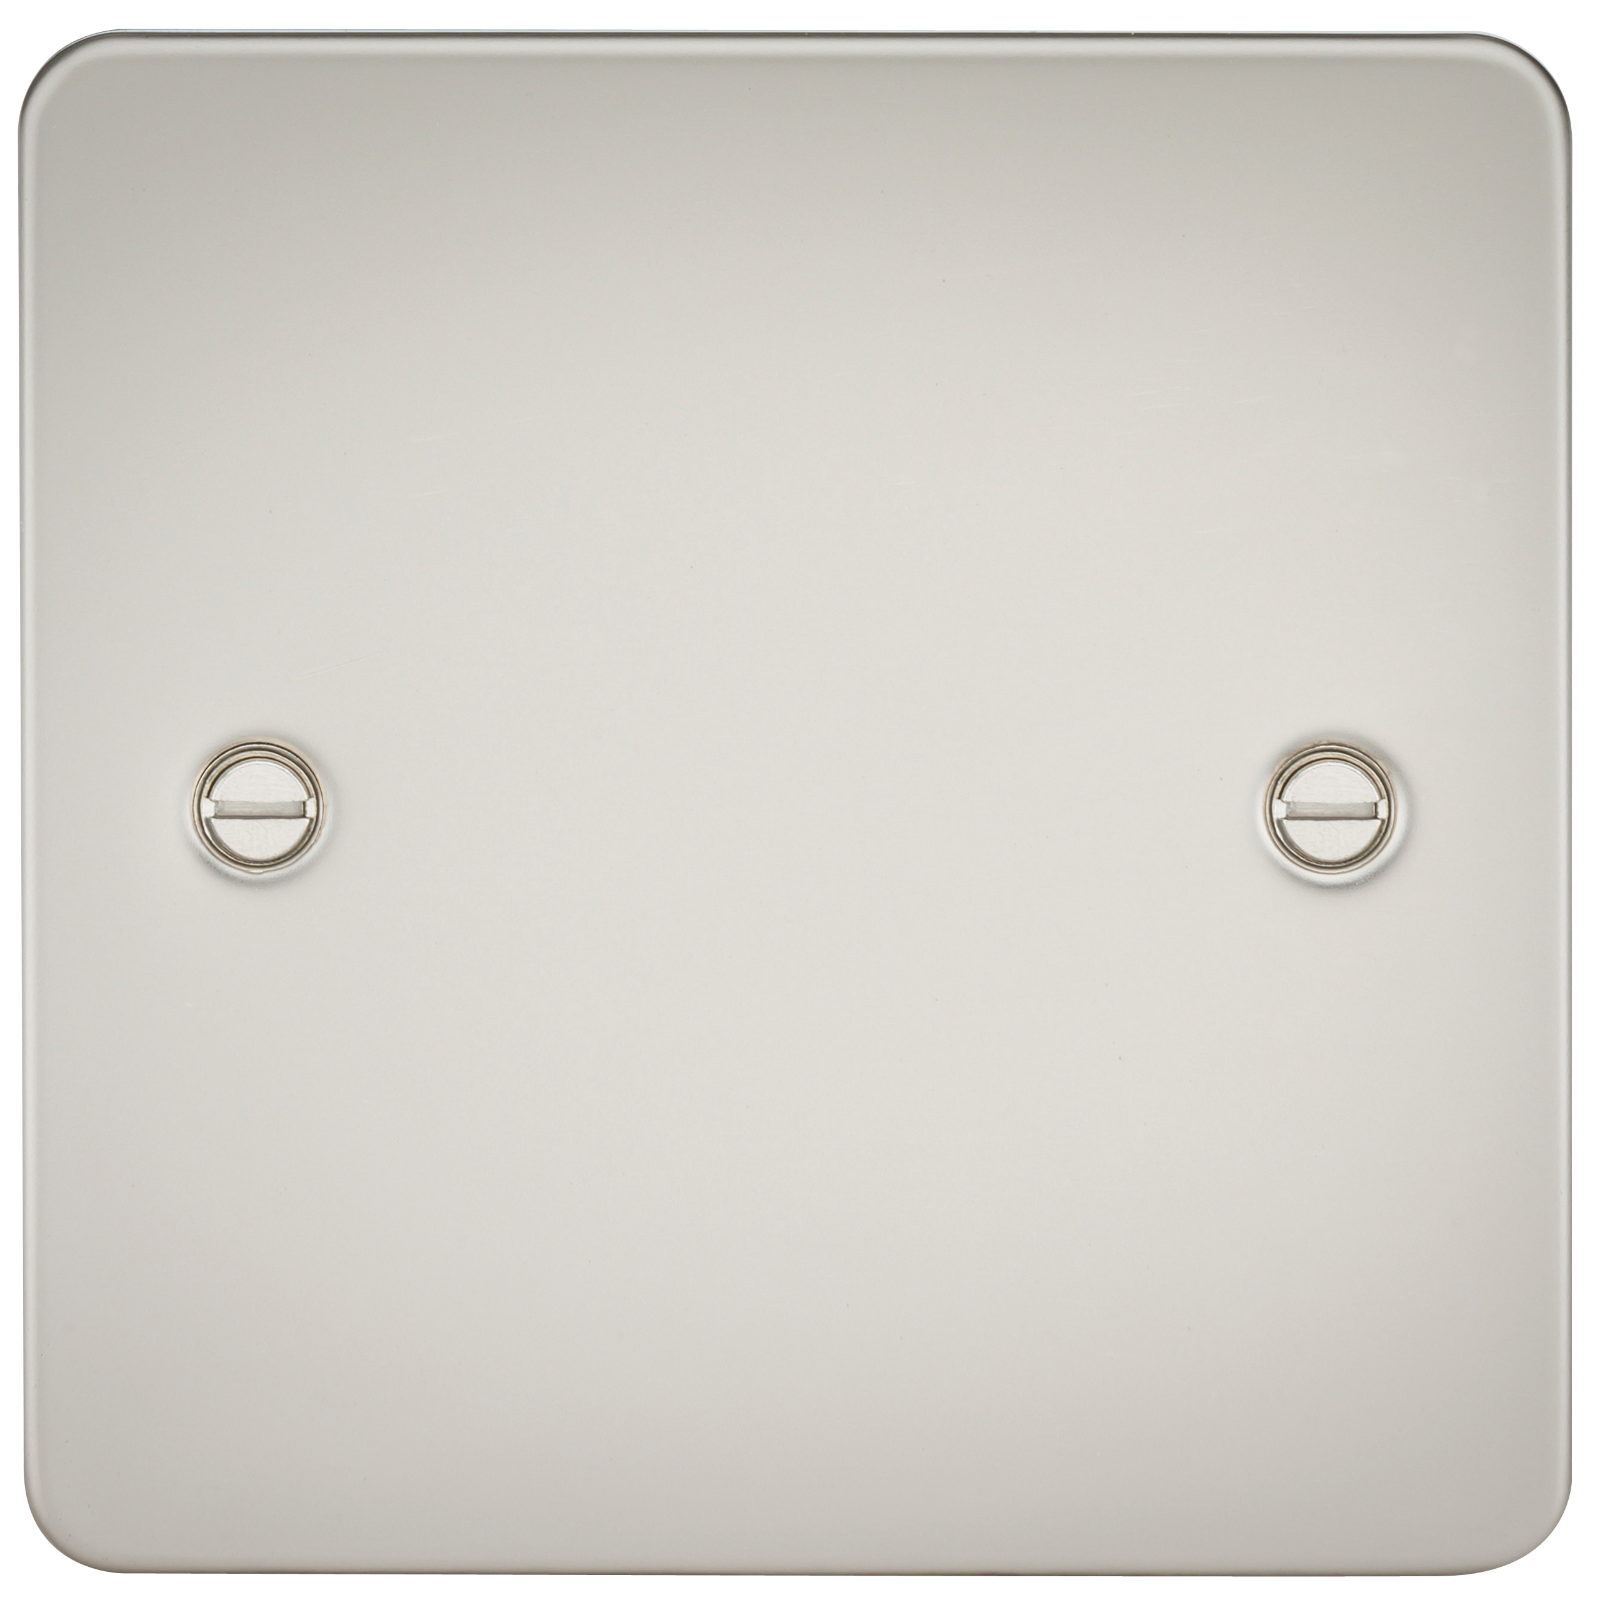 FLAT PLATE 1G BLANKING PLATE - PEARL